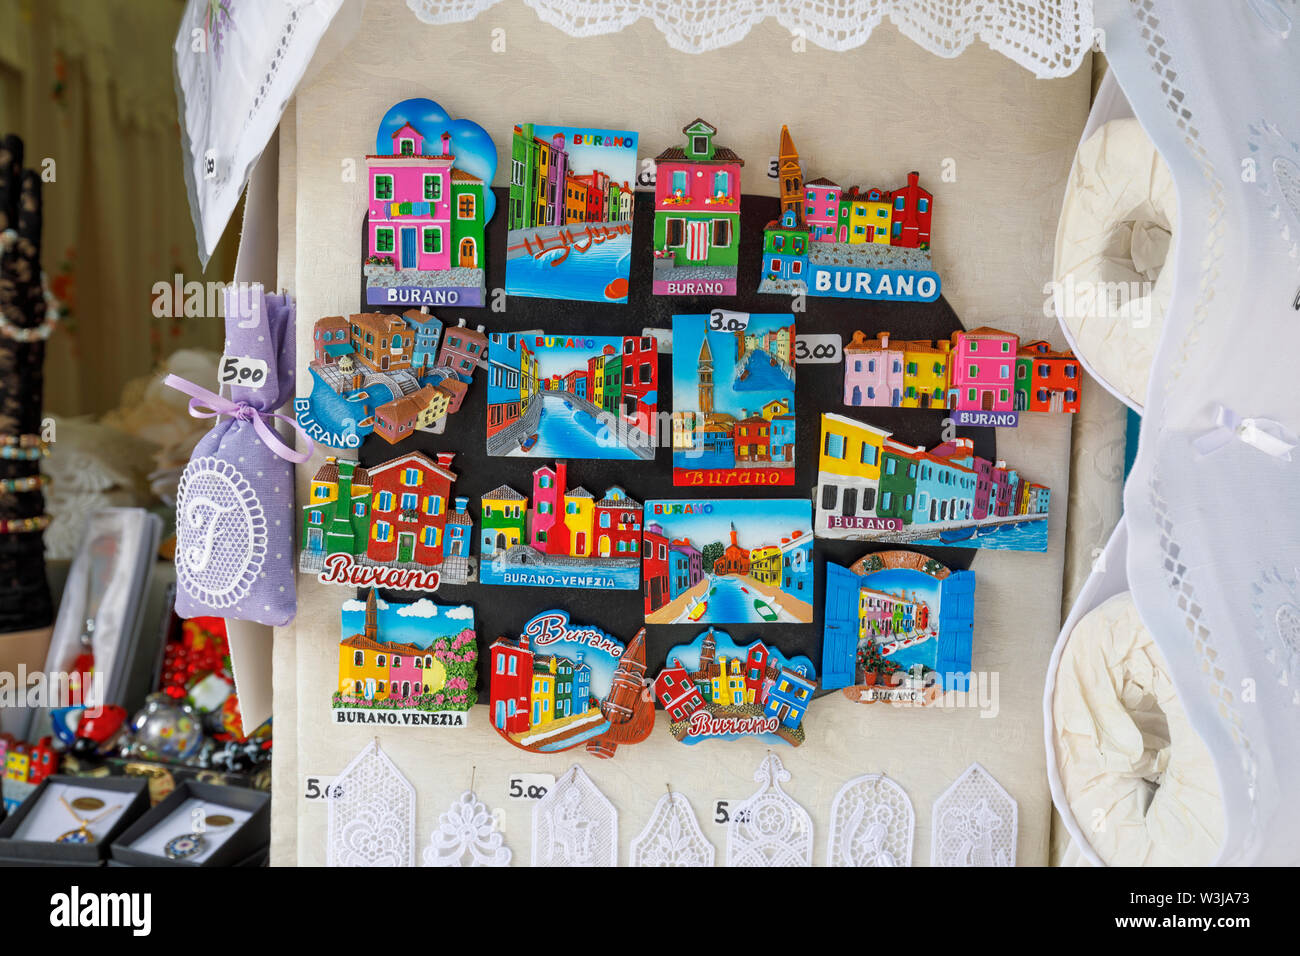 Display of brightly coloured fridge magnets with views of Burano and its colourful houses in a town centre souvenir shop, Burano, Venice Lagoon, Italy - Stock Image